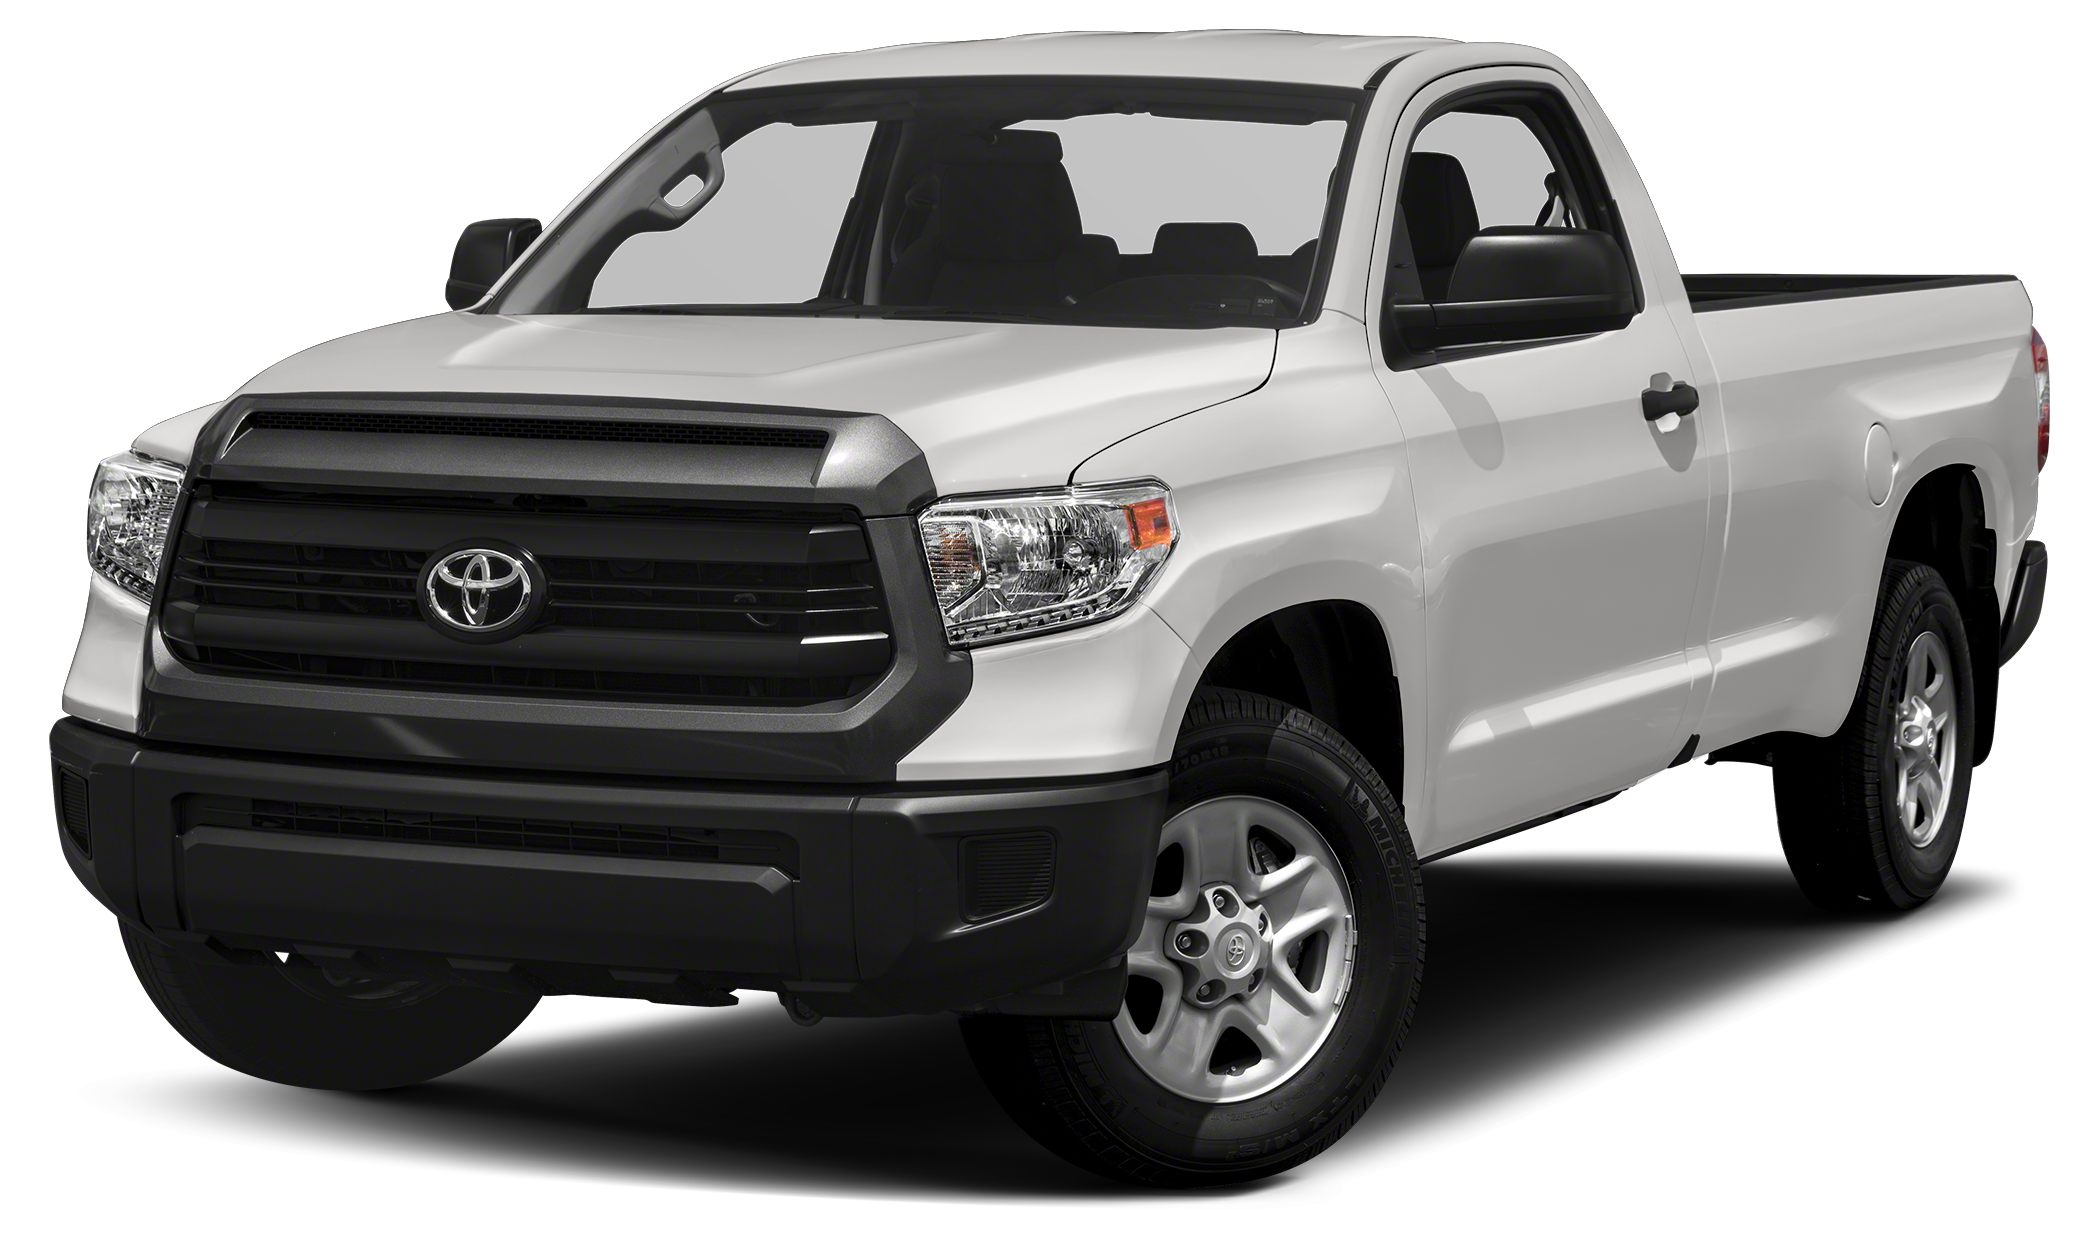 2017 Toyota Tundra SR SR trim SUPER WHITE exterior and GRAPHITE interior Bluetooth CD Player H